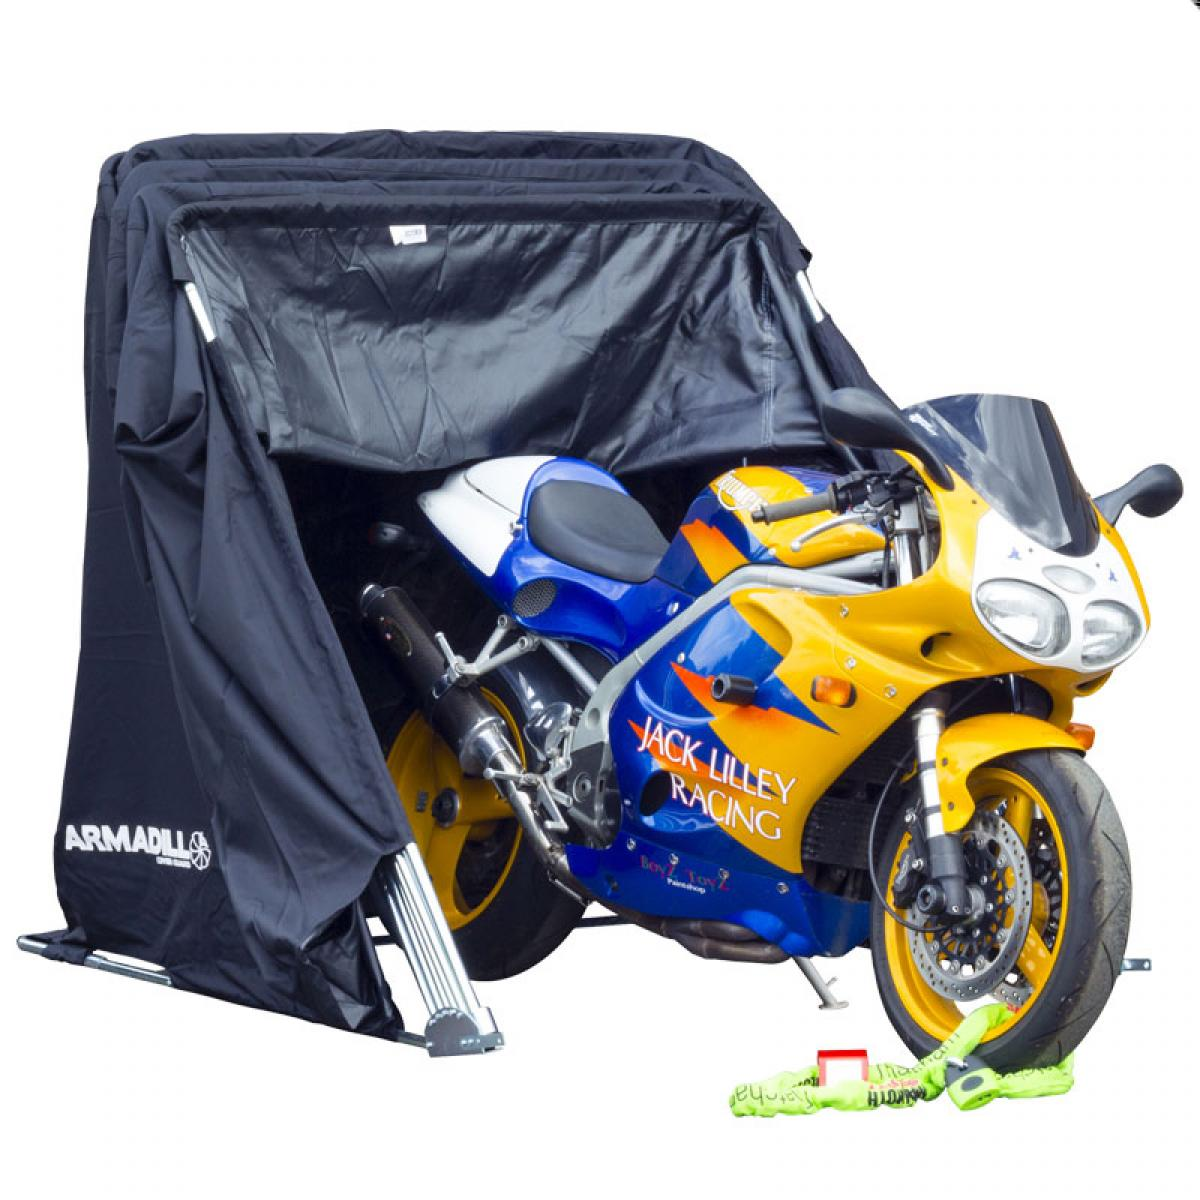 Armadillo motorcycle scooter folding design garage waterprrof shelter medium ebay - Motorcycle foldable garage tent cover ...